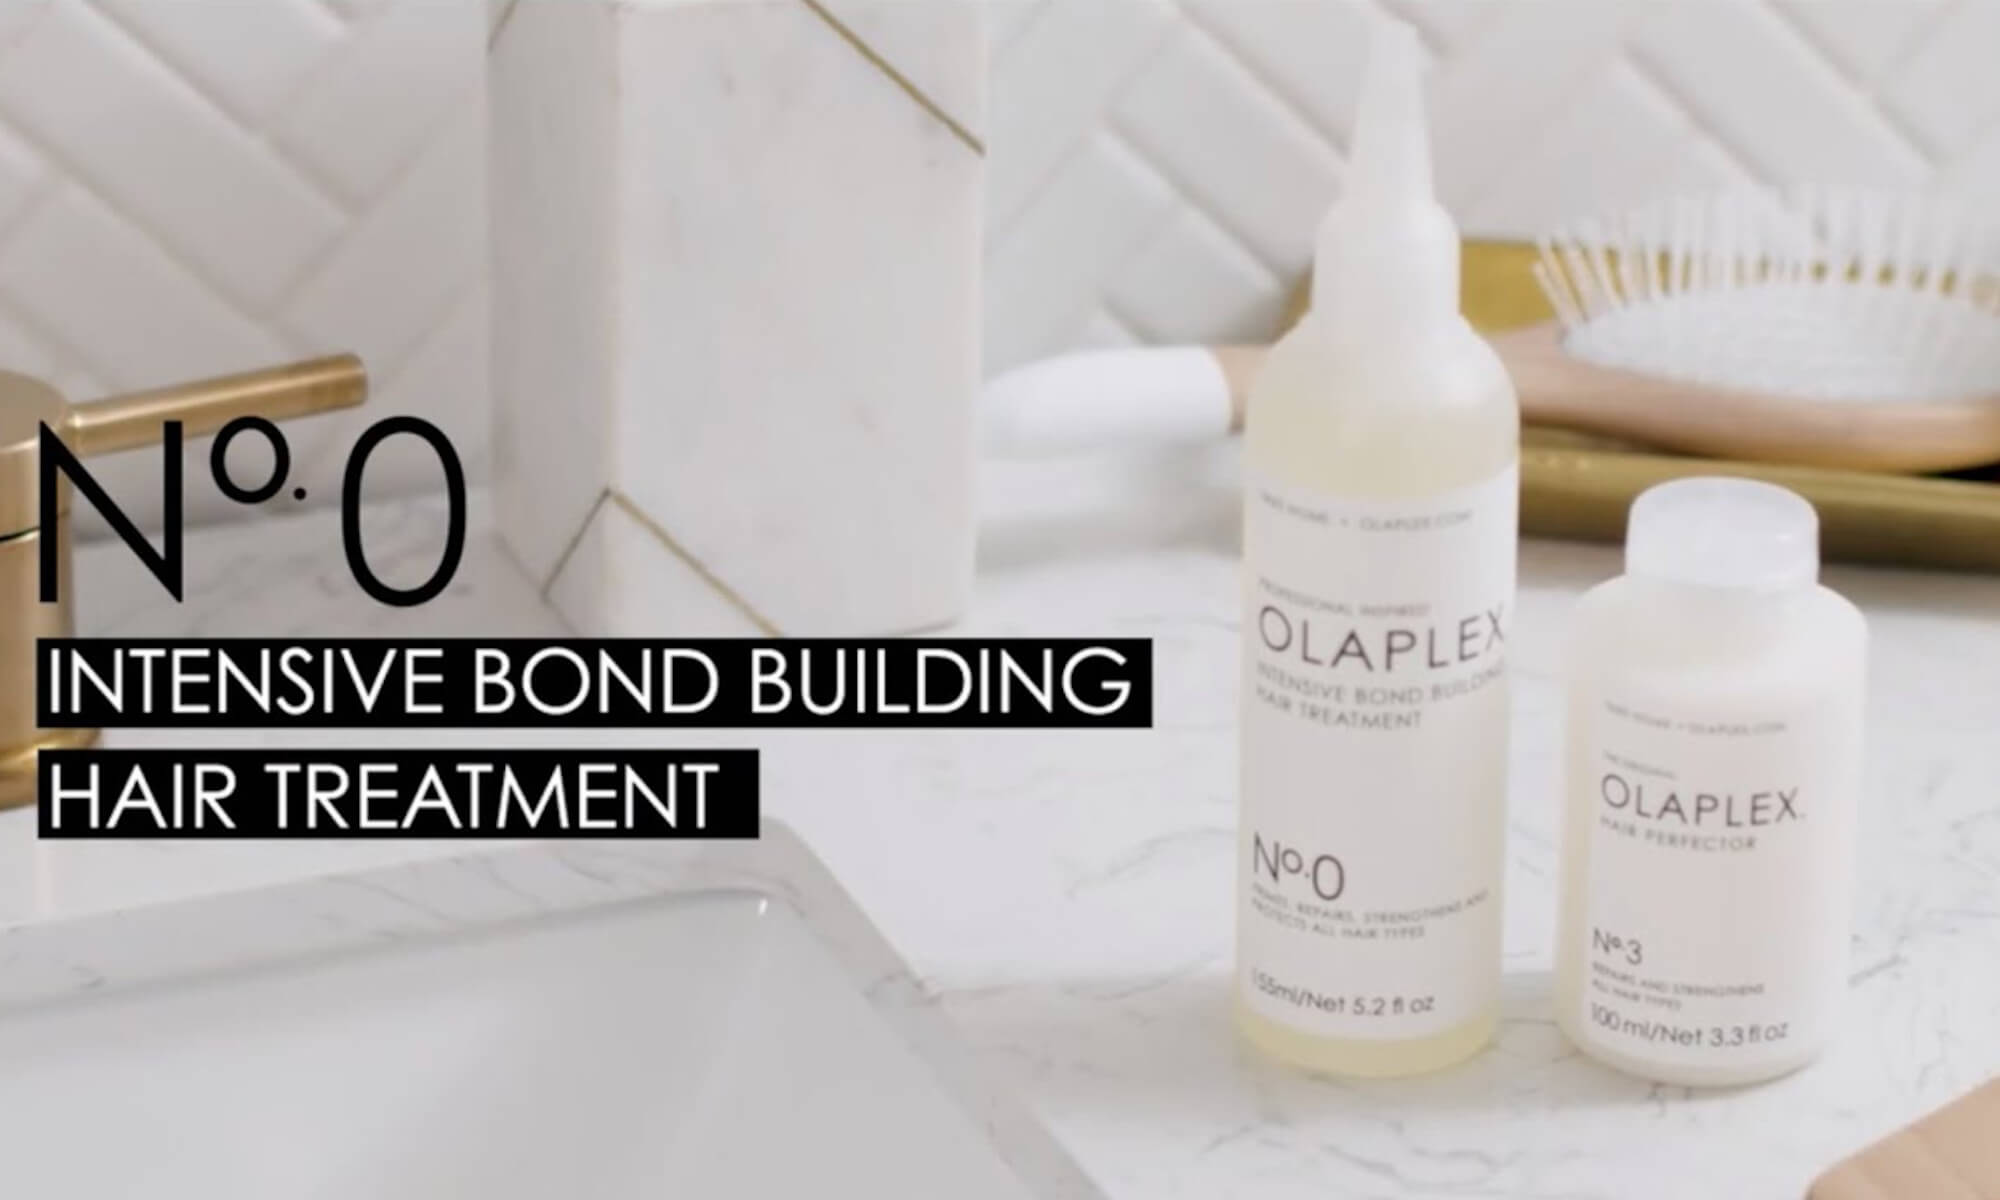 Olaplex No.0: Your Questions Answered